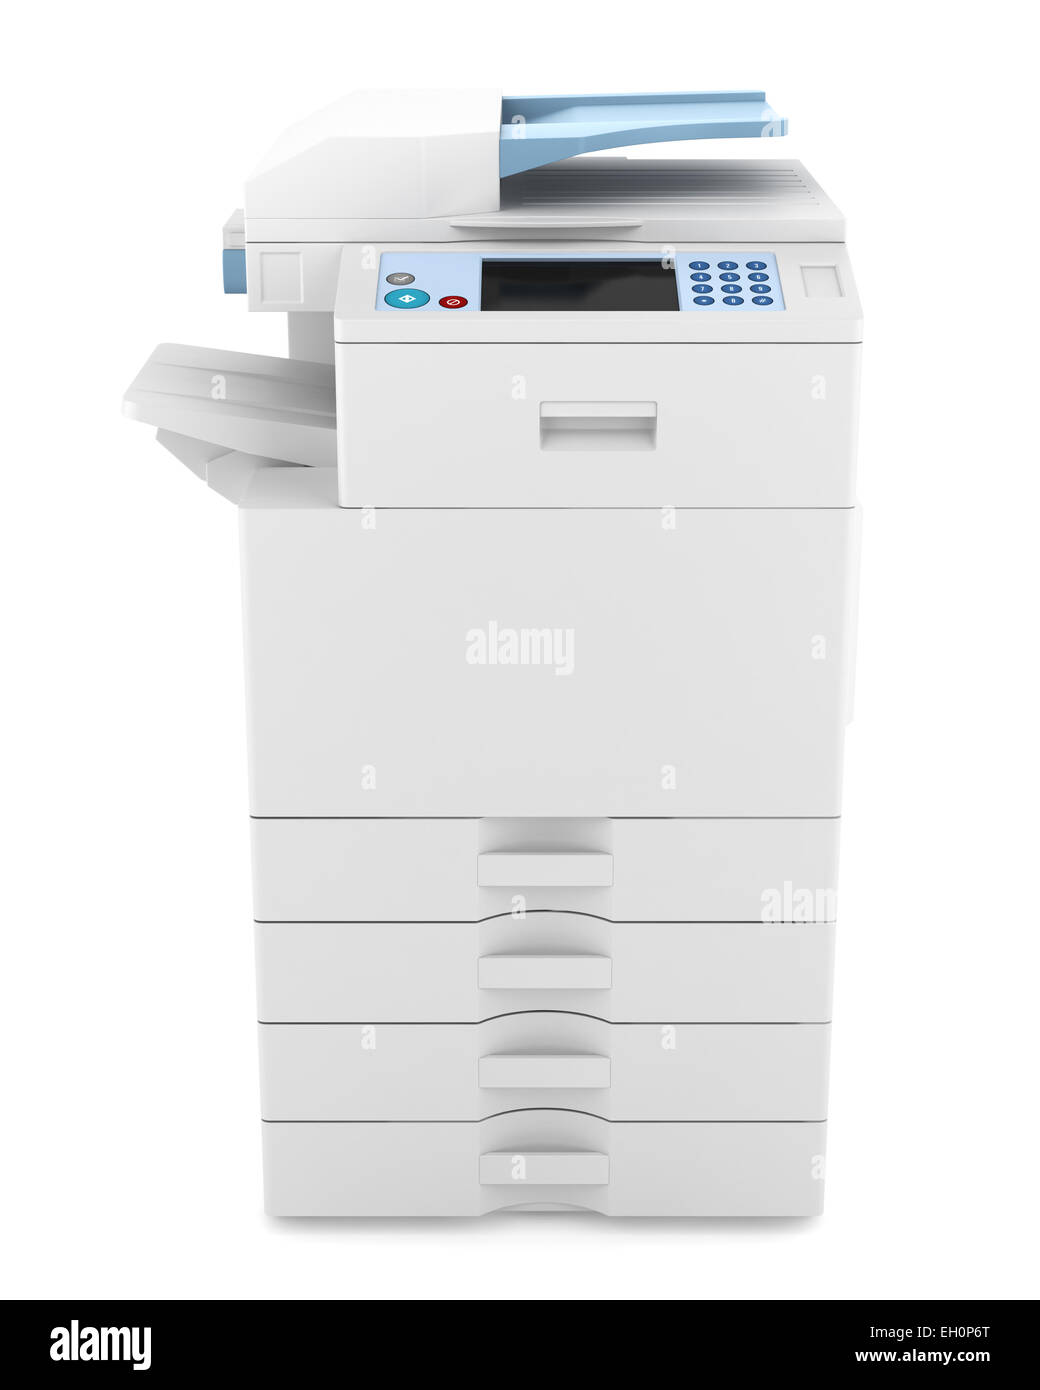 modern office multifunction printer isolated on white background - Stock Image